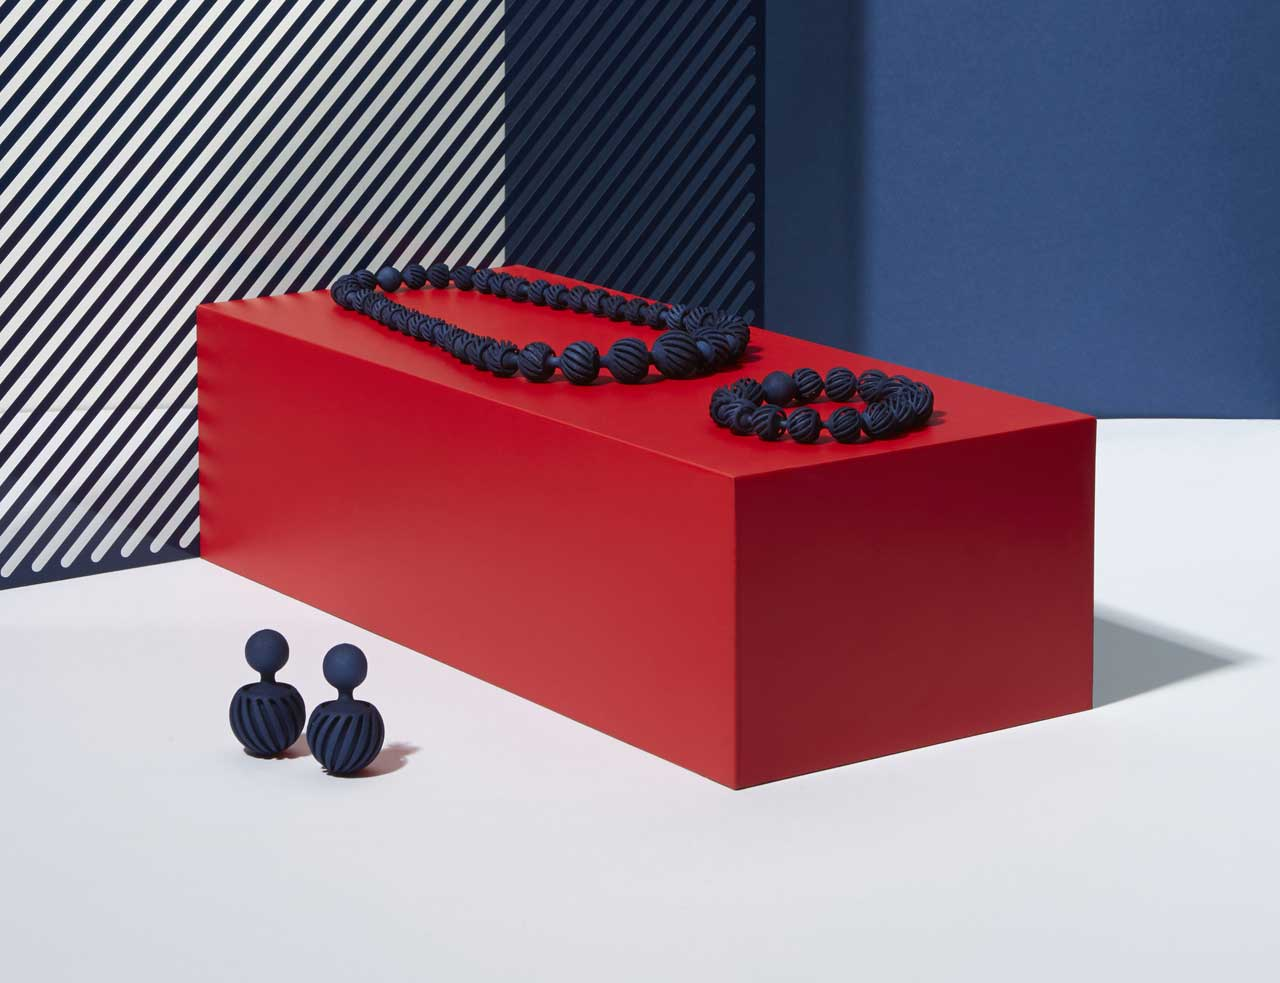 Bearing 3D Printed Jewelry by Giulio Iacchetti for Maison 203